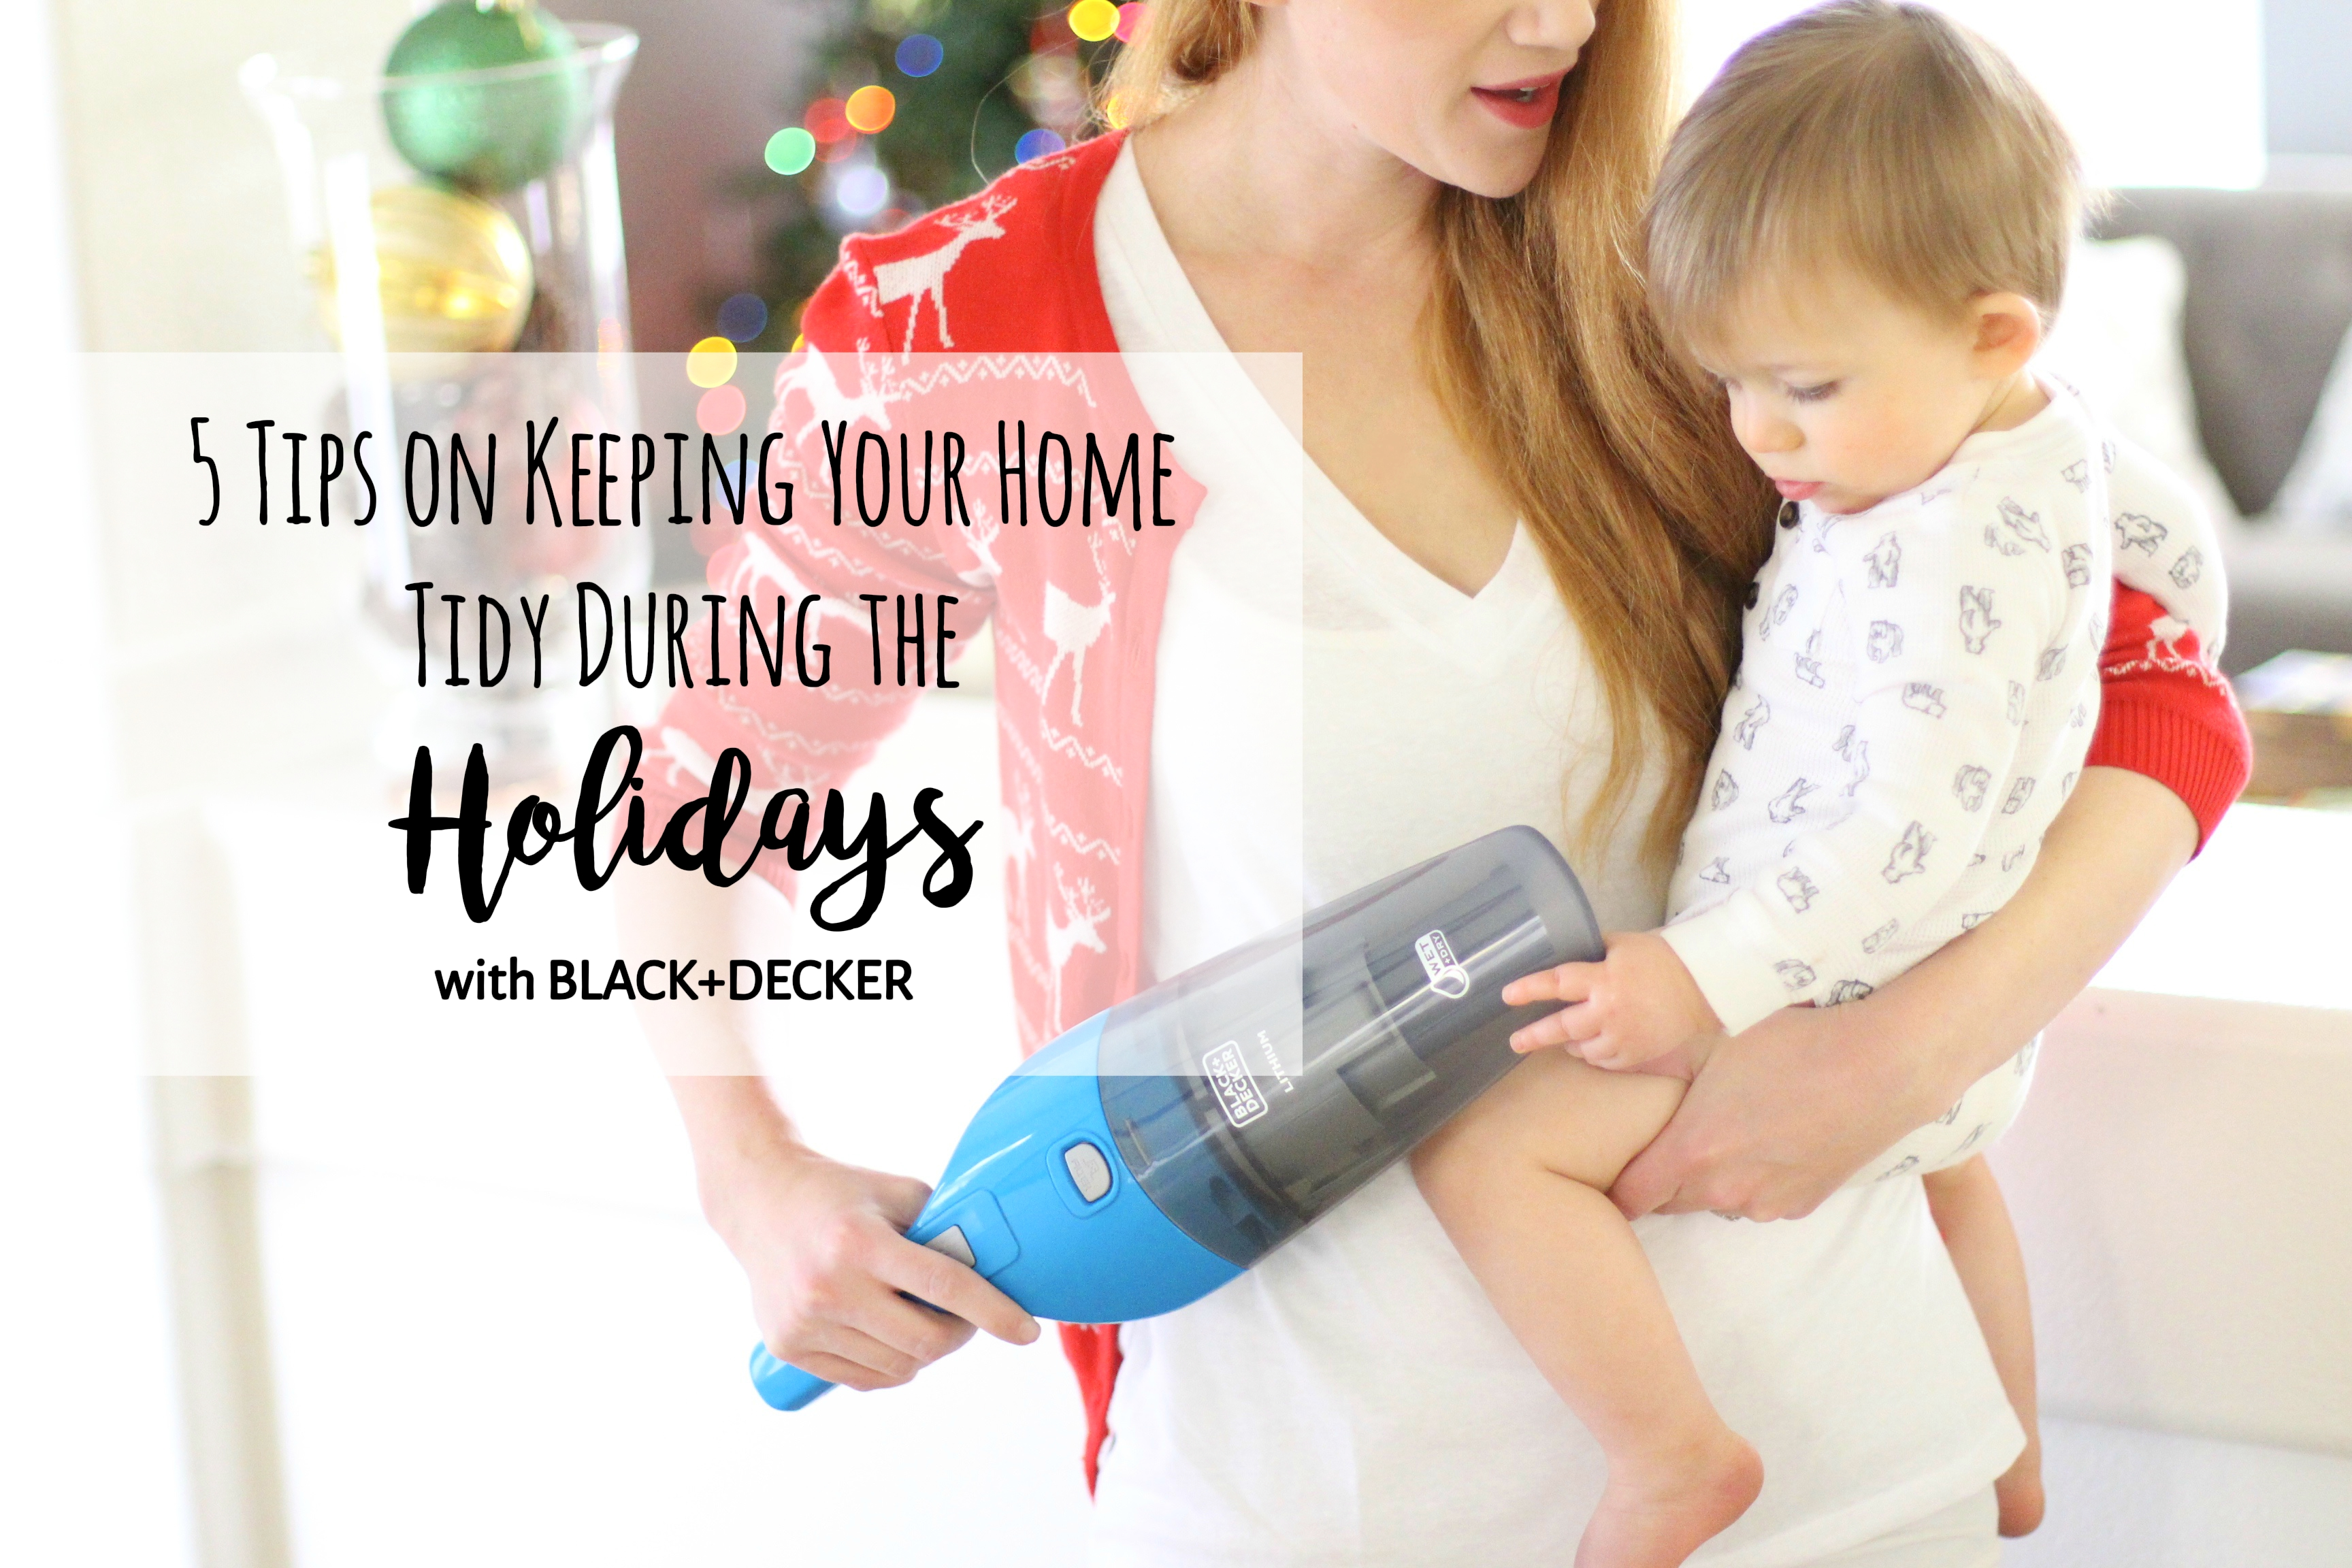 5 Tips on Keeping your Home Tidy During the Holidays